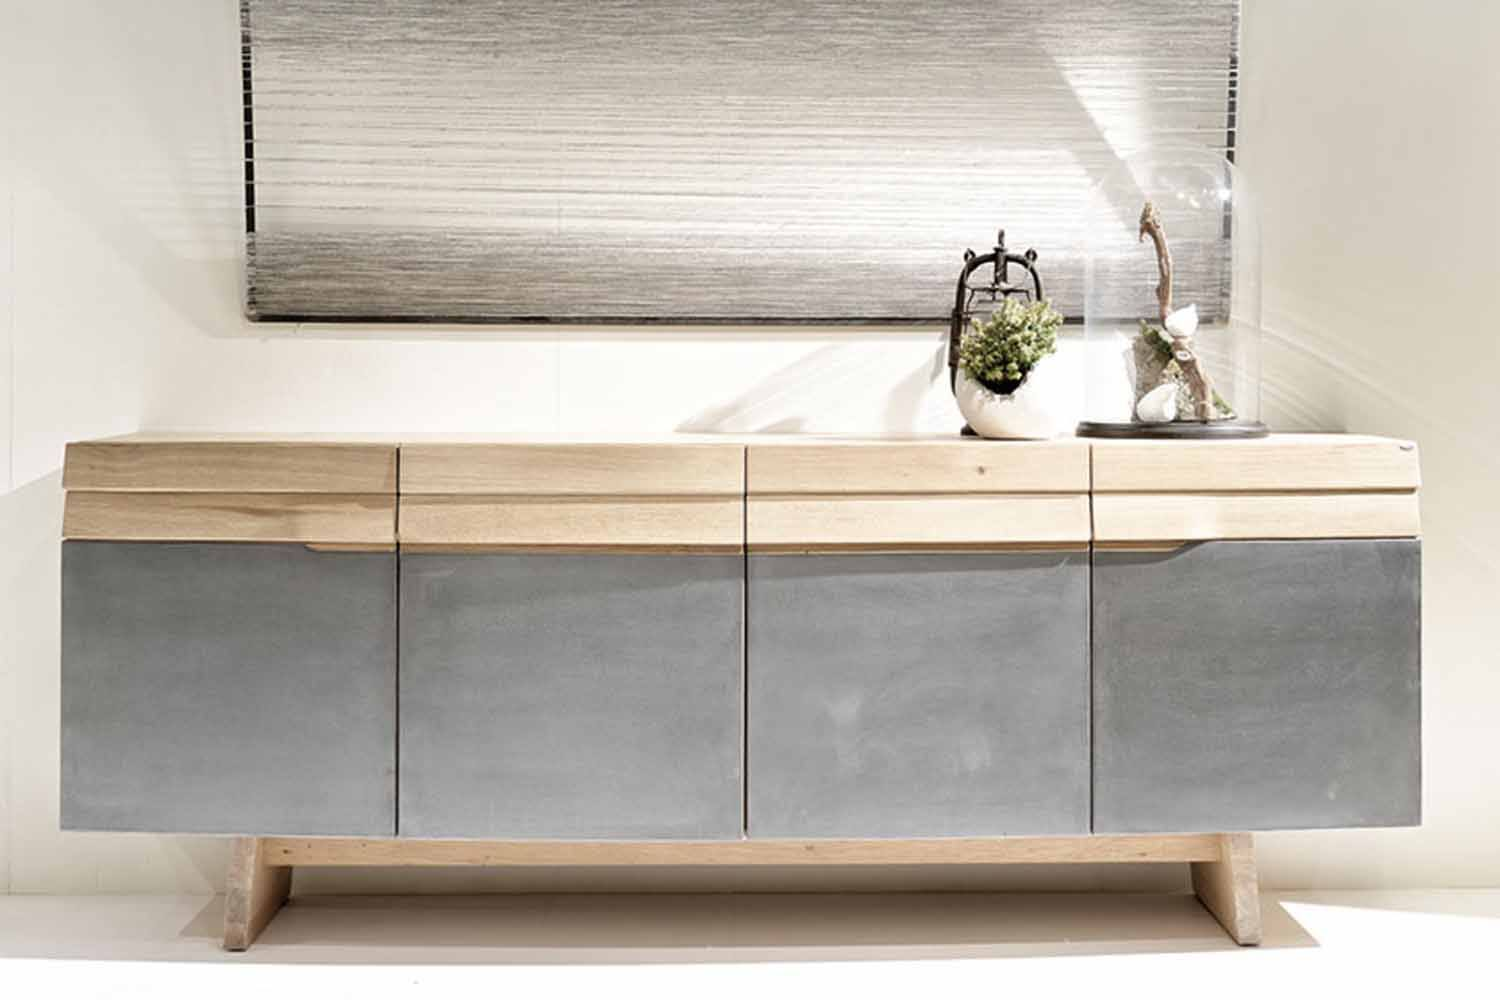 voglauer v organo sideboard m bel markt meier. Black Bedroom Furniture Sets. Home Design Ideas